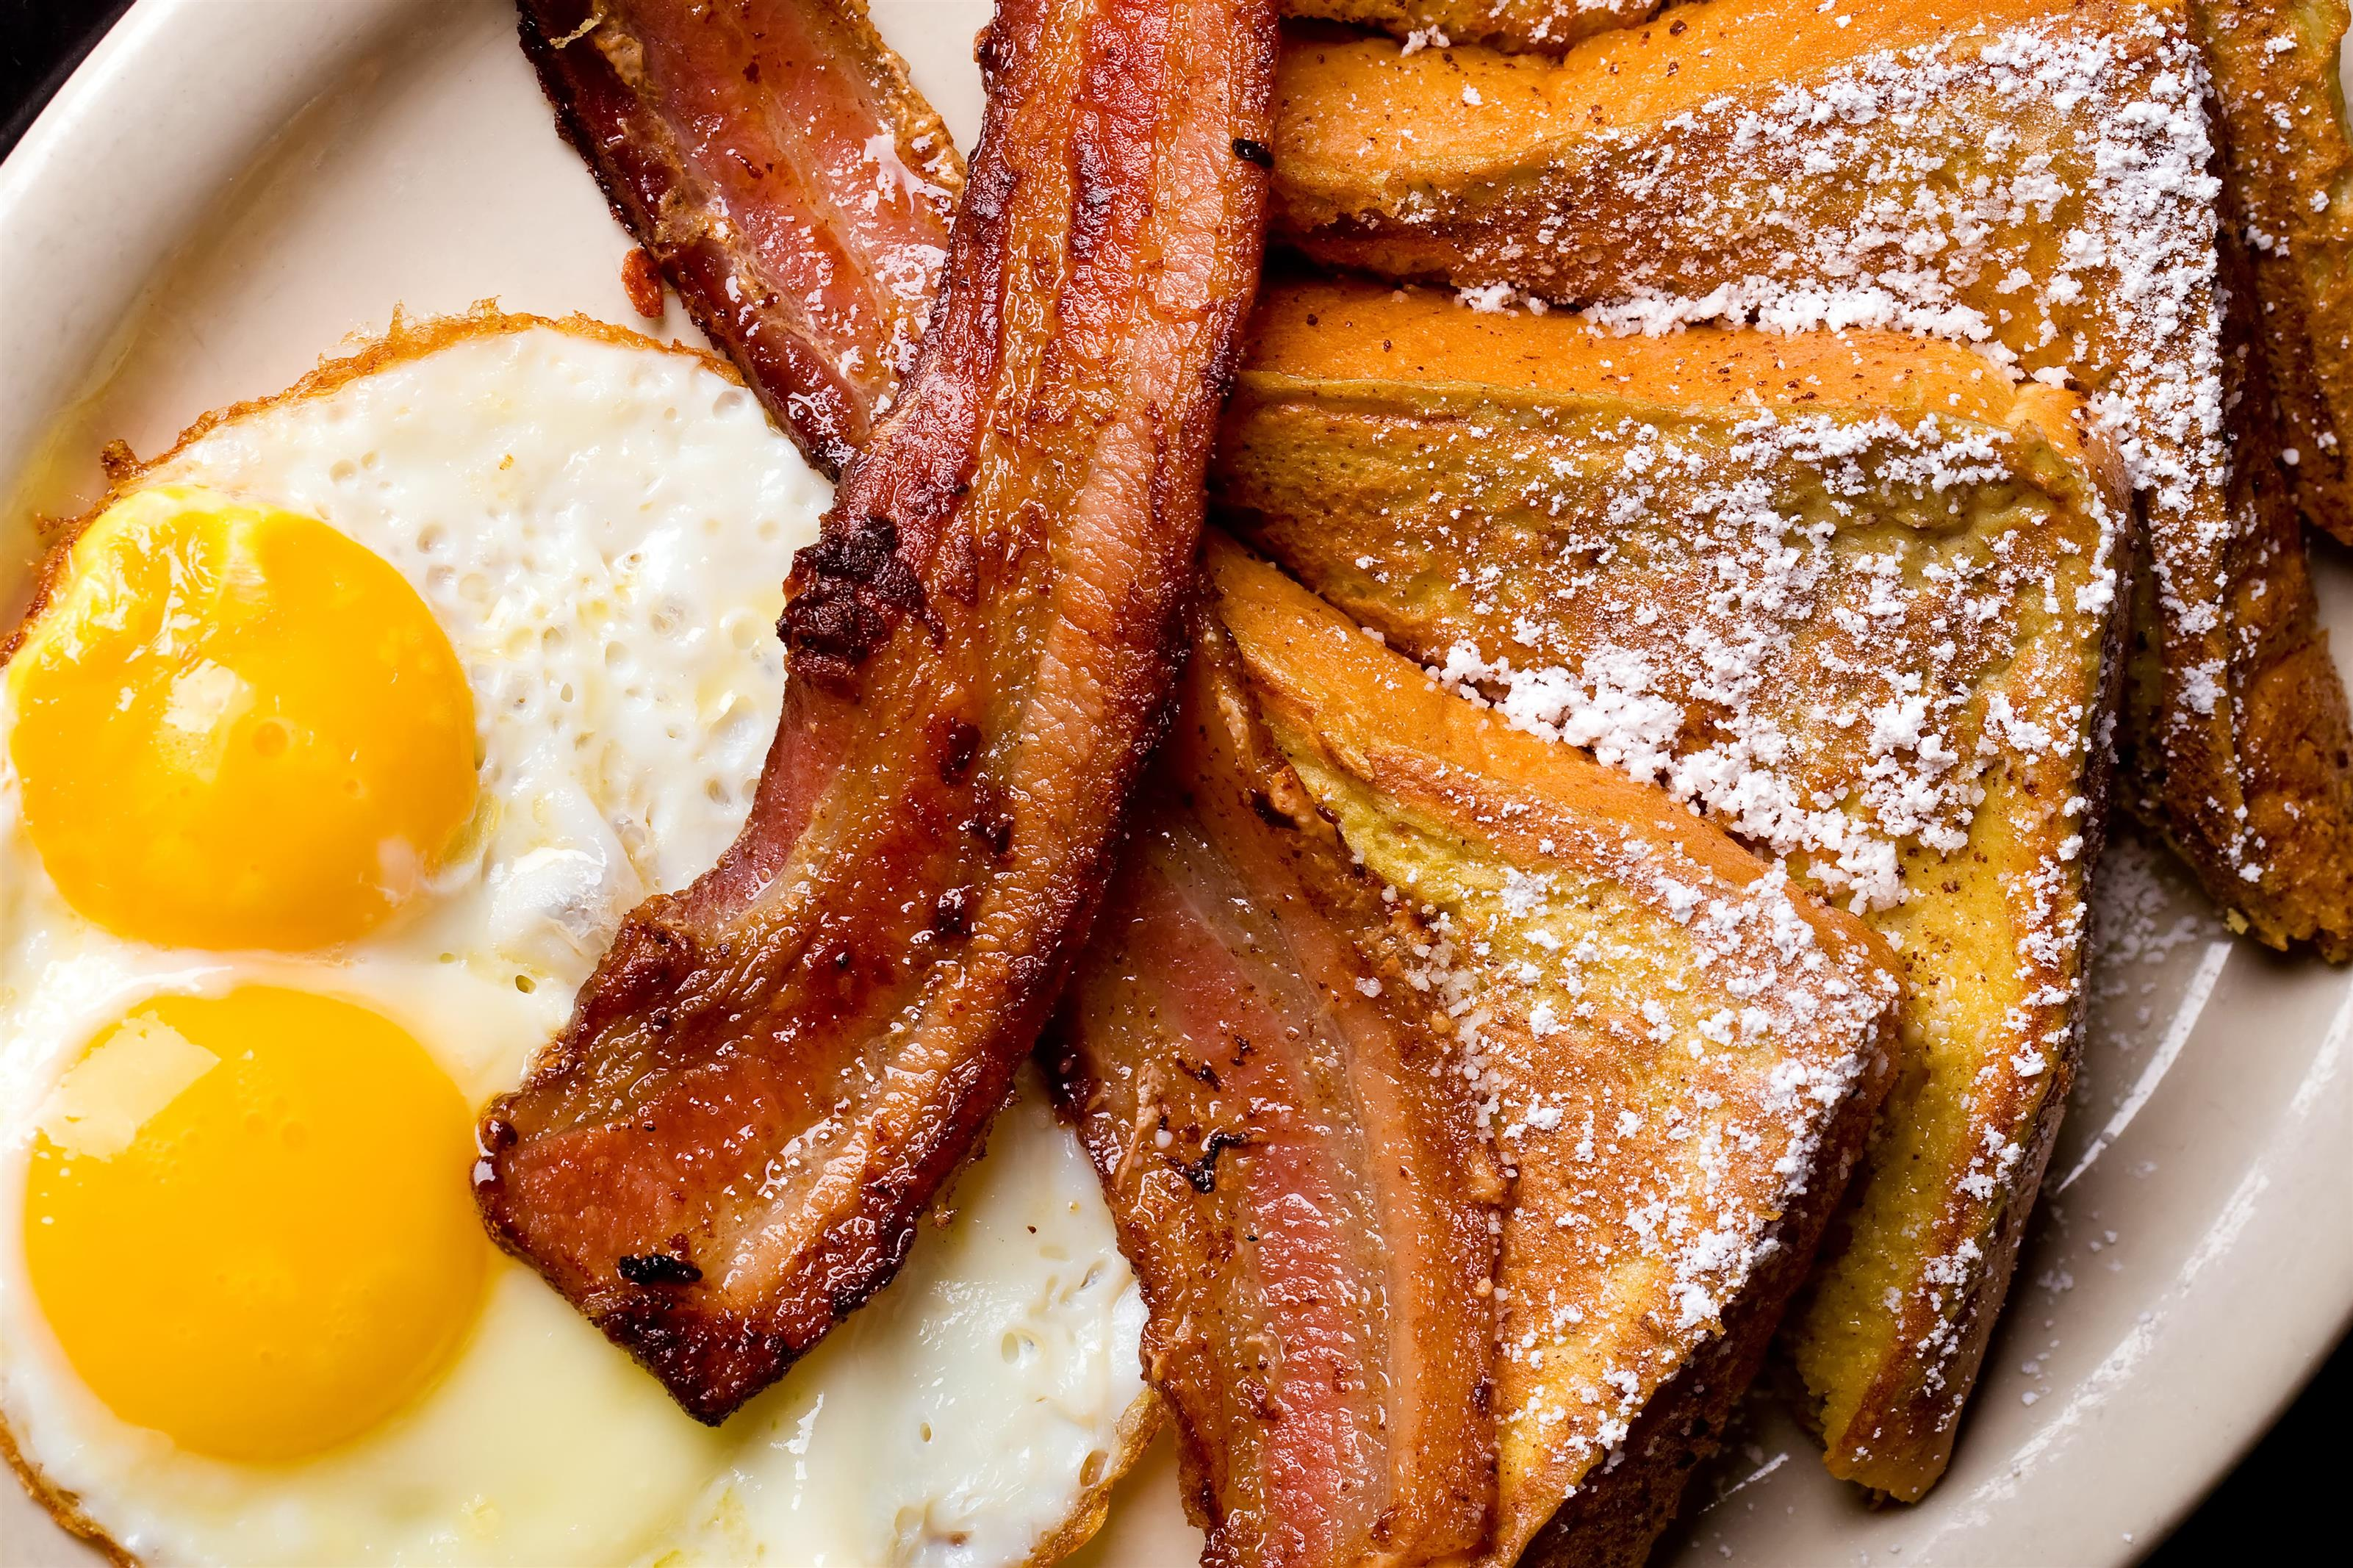 two sunny side eggs, bacon, and french toast